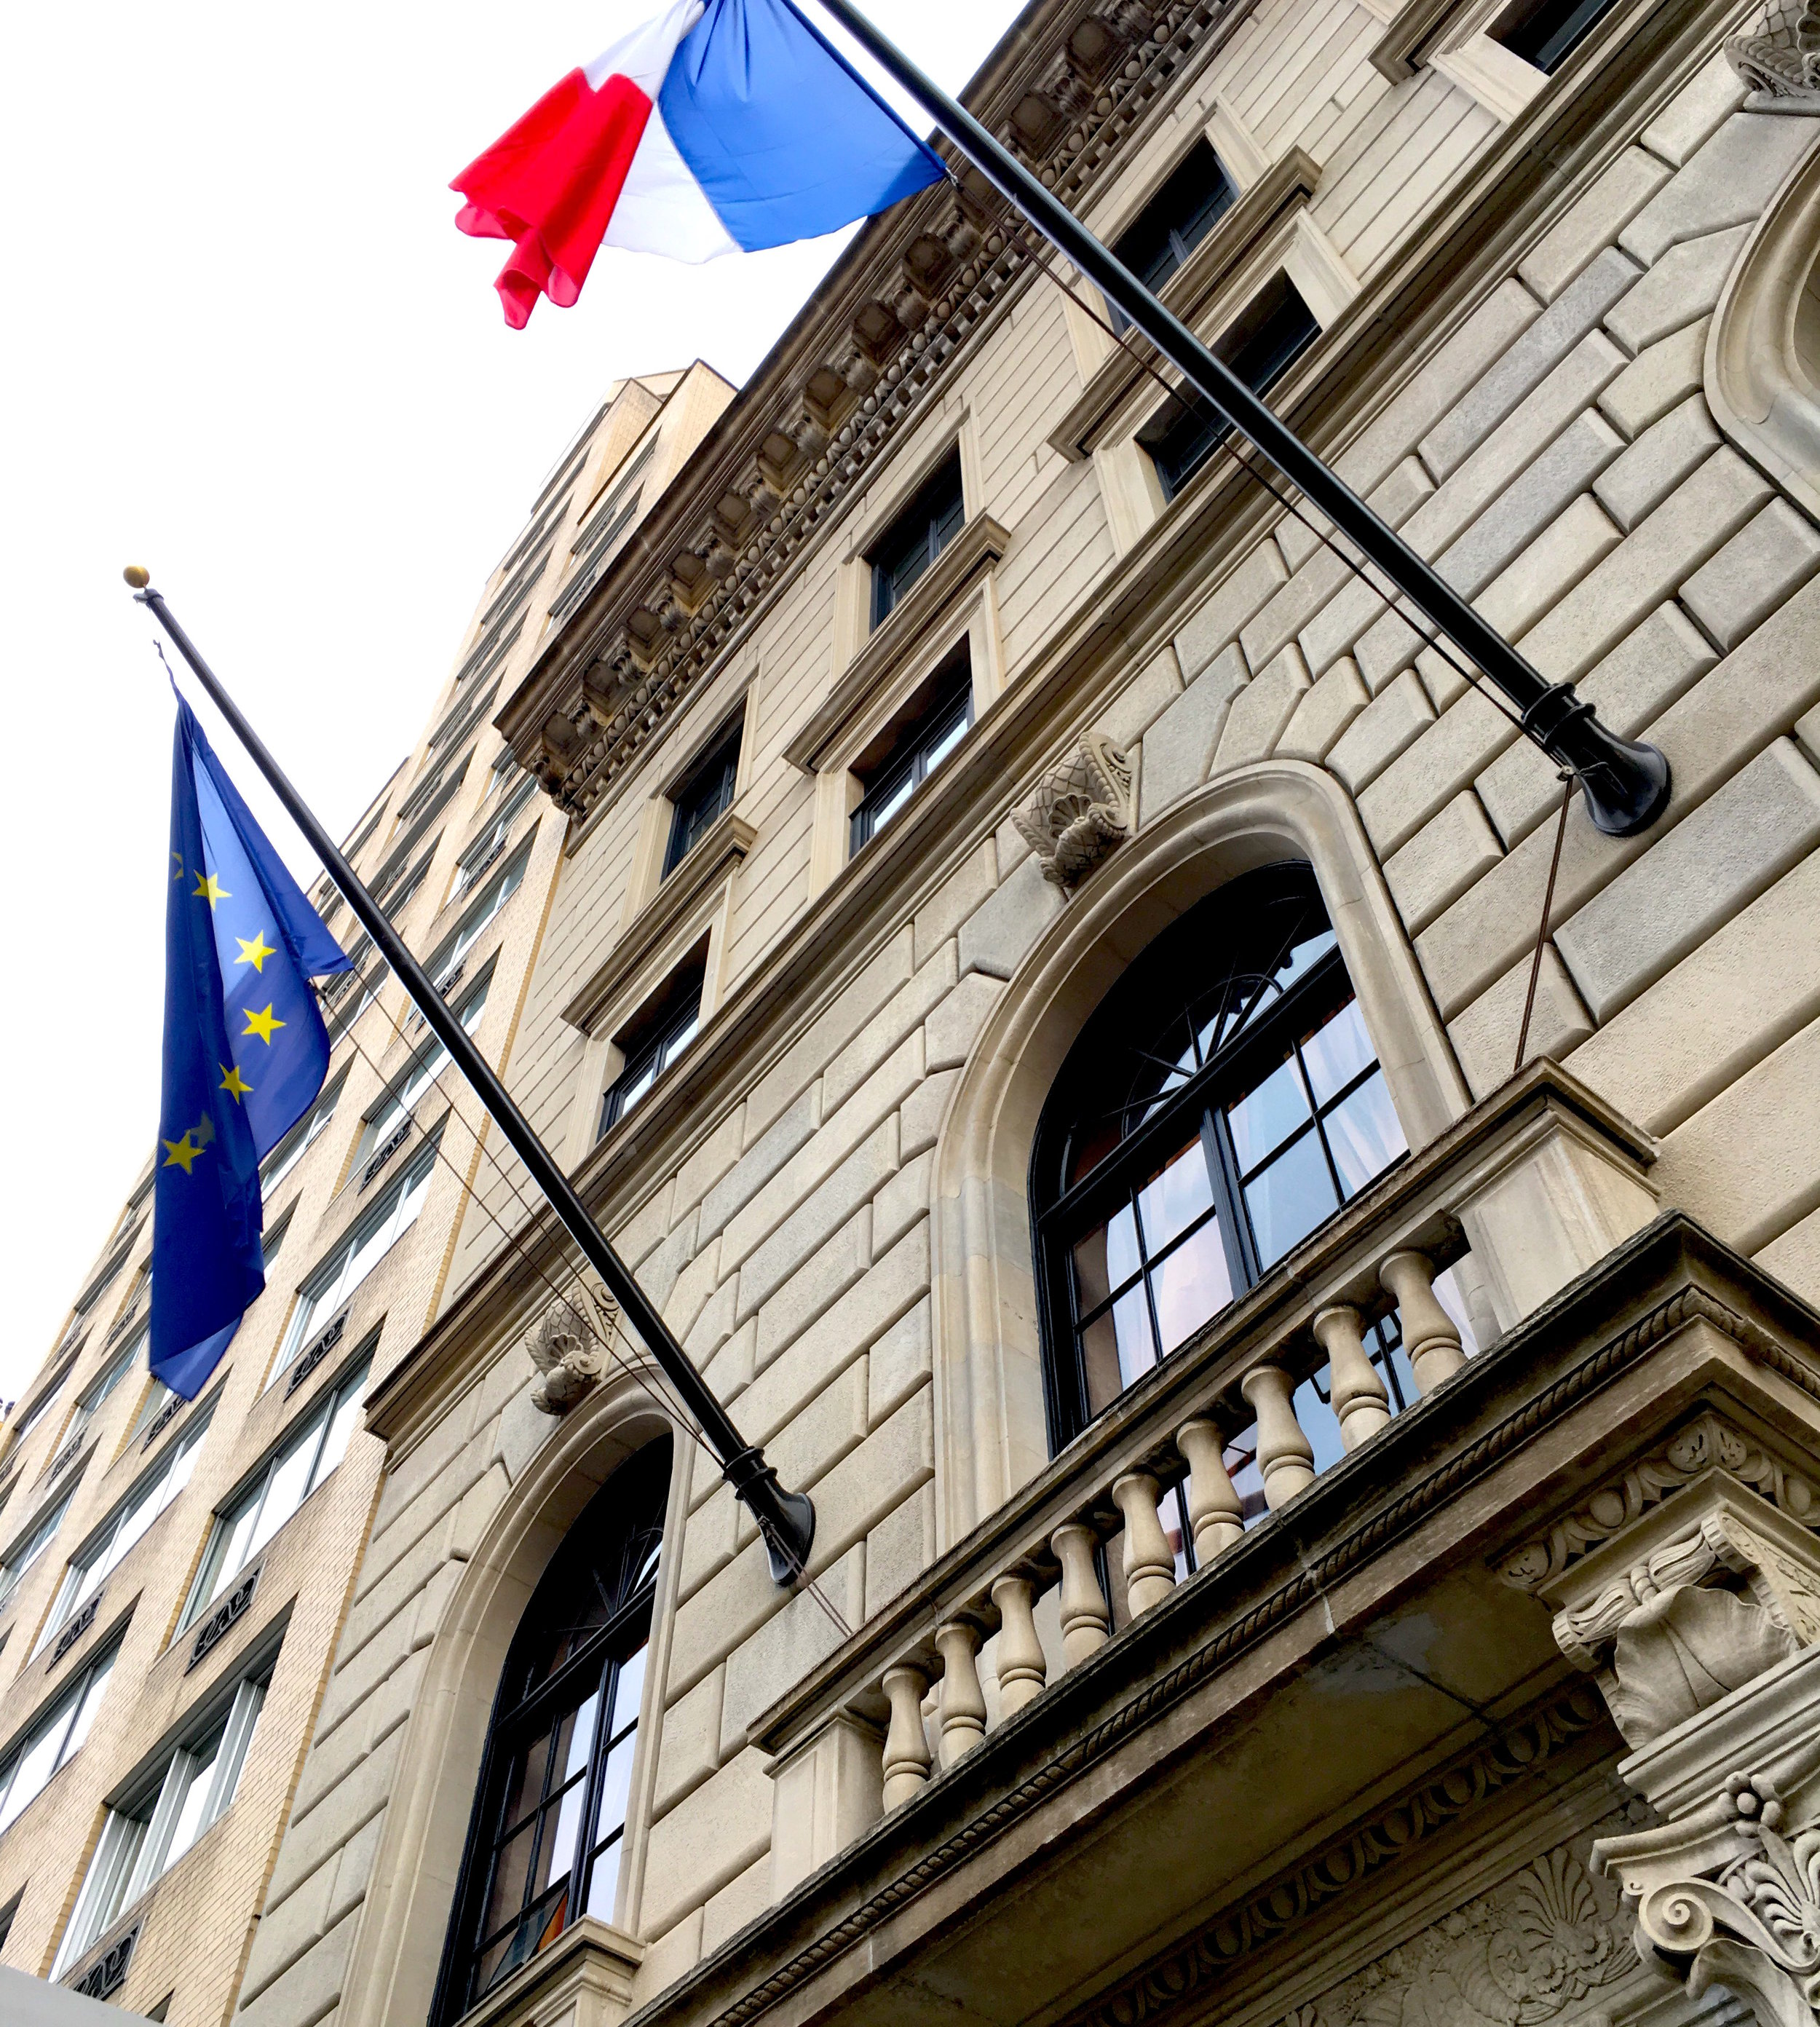 The French Consulate